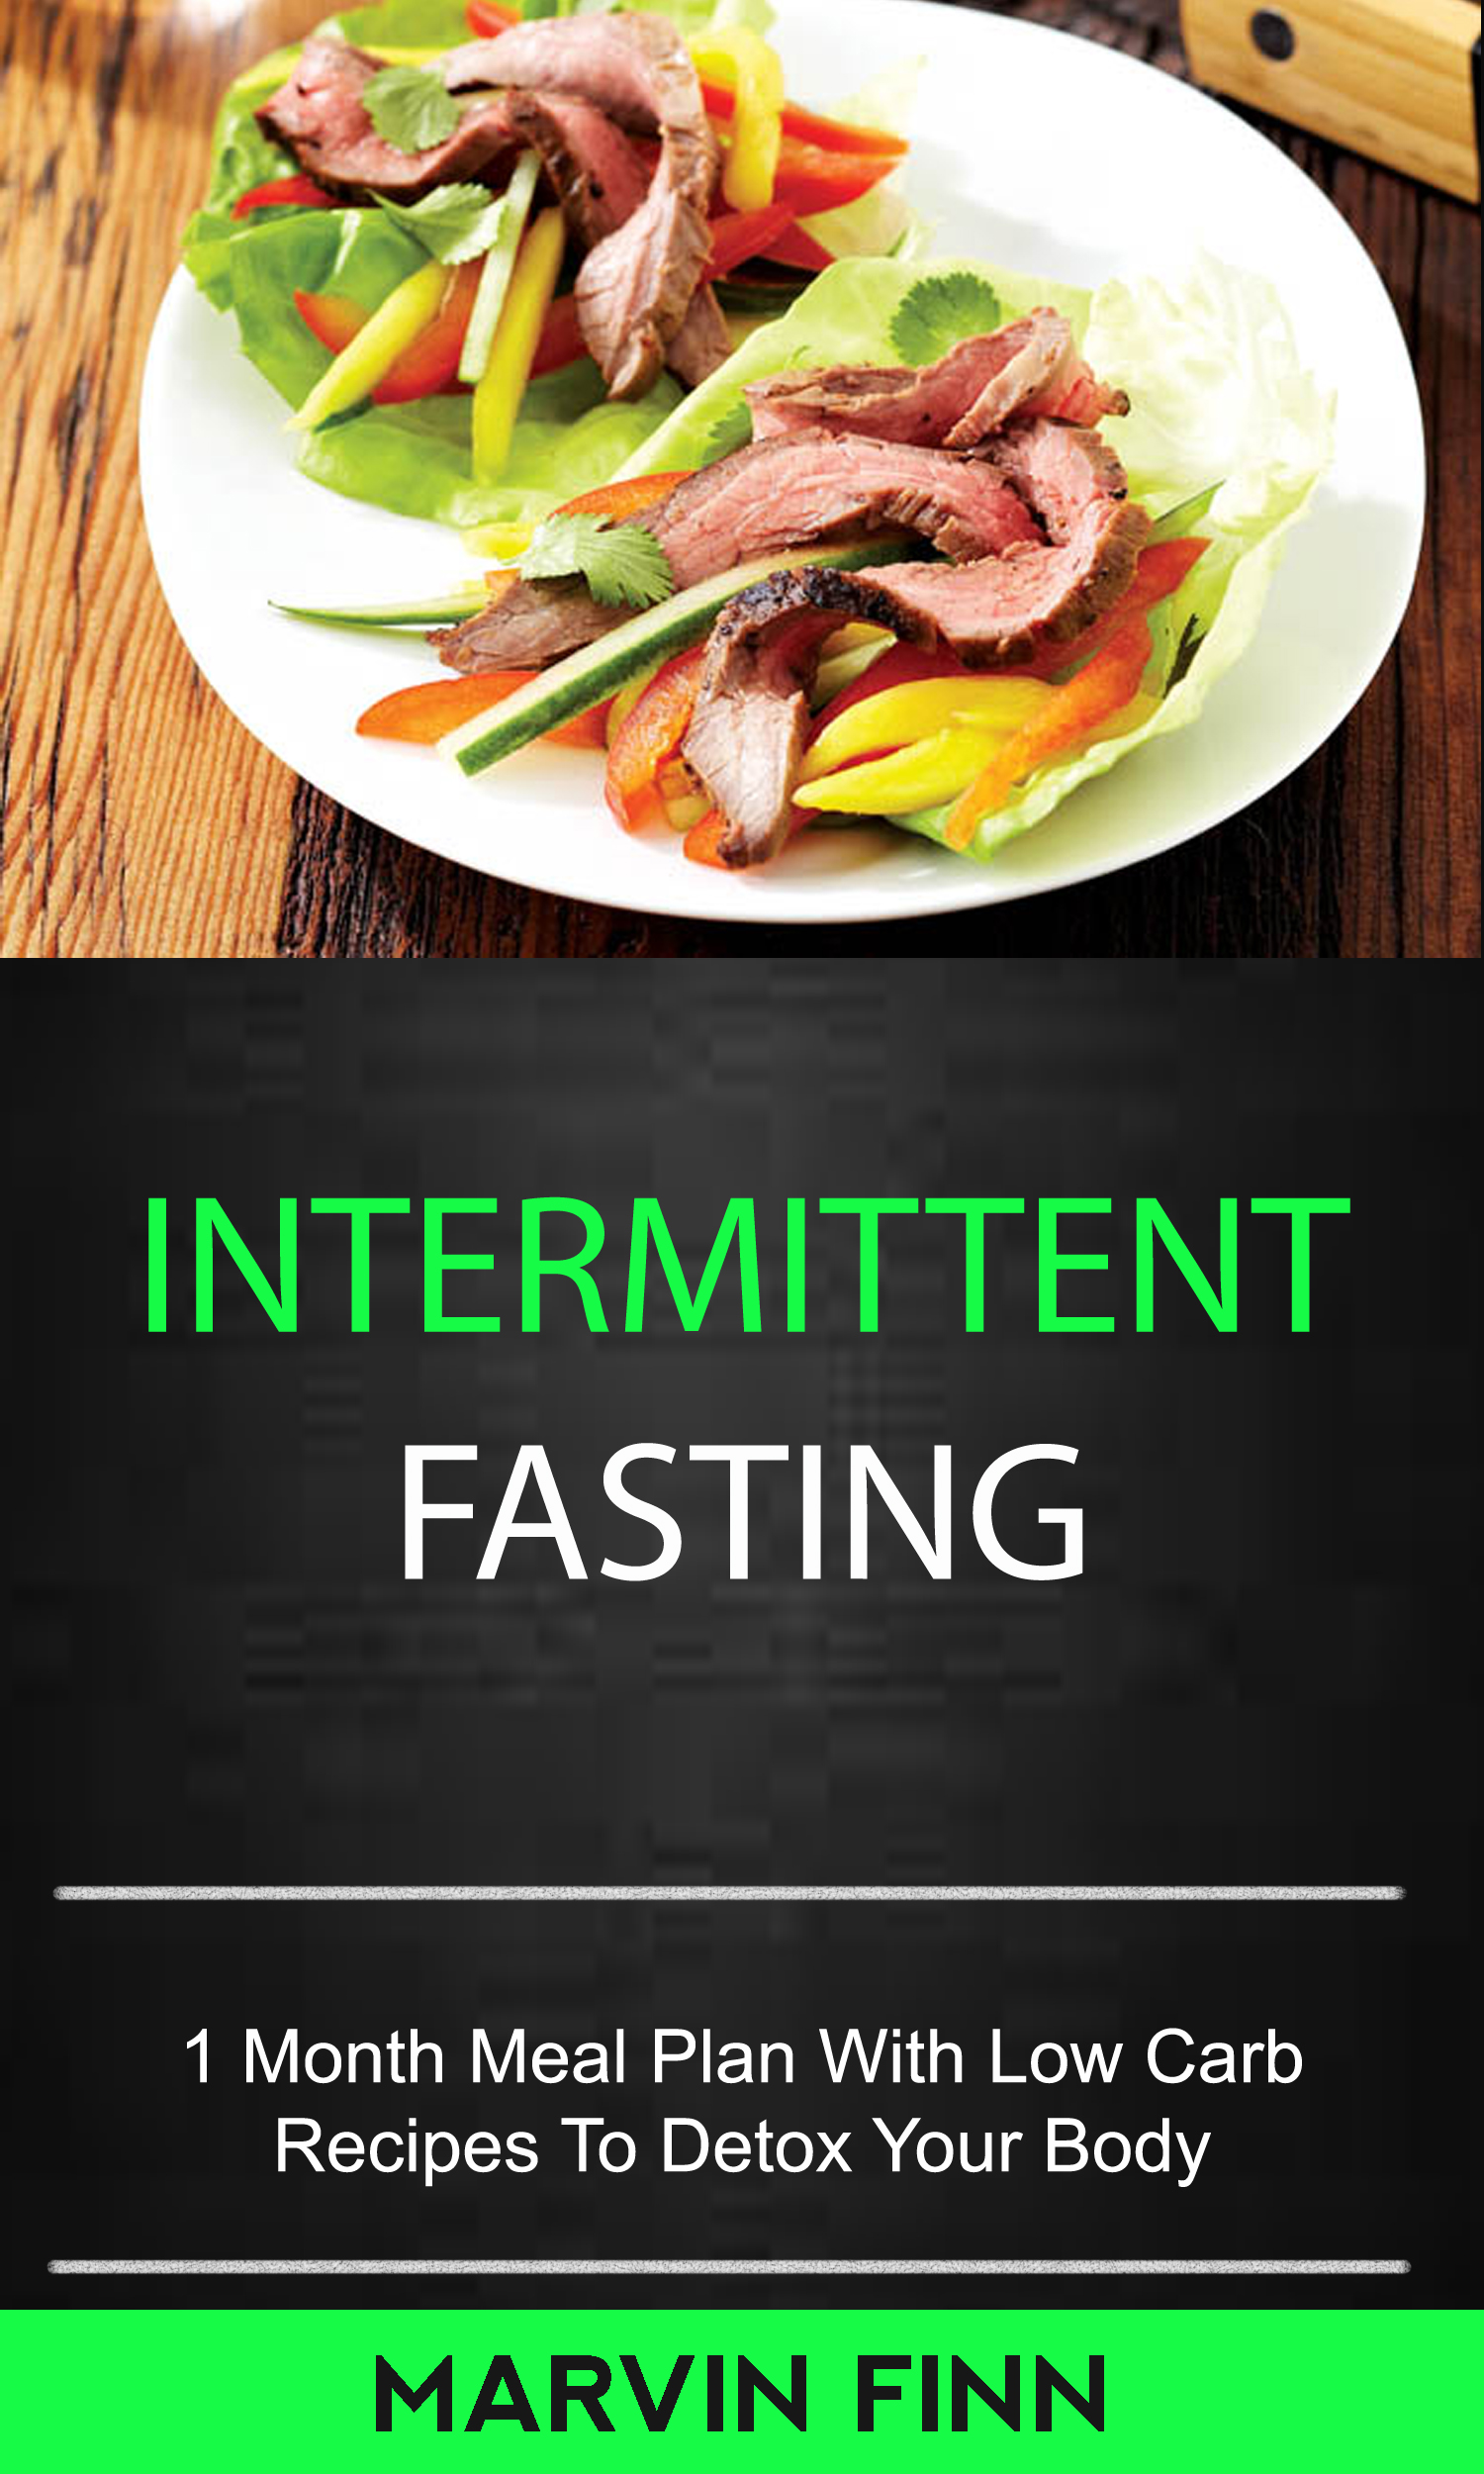 Intermittent fasting: 1 month meal plan with low carb recipes to detox your body